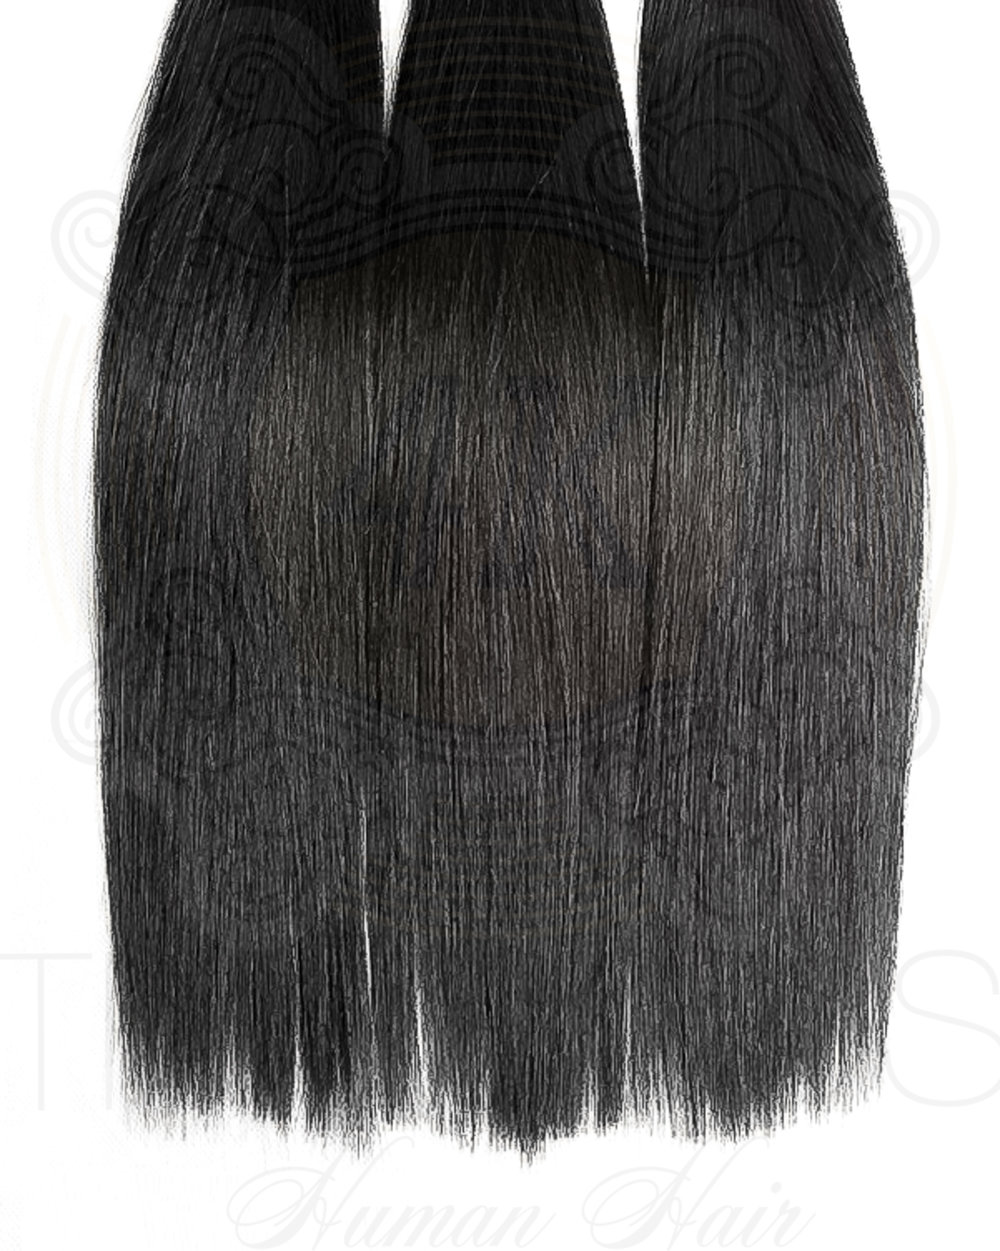 4K Tresses Branded Premium Full Unit 100% Indian Human Hair Lace Front or Full Lace - Straight